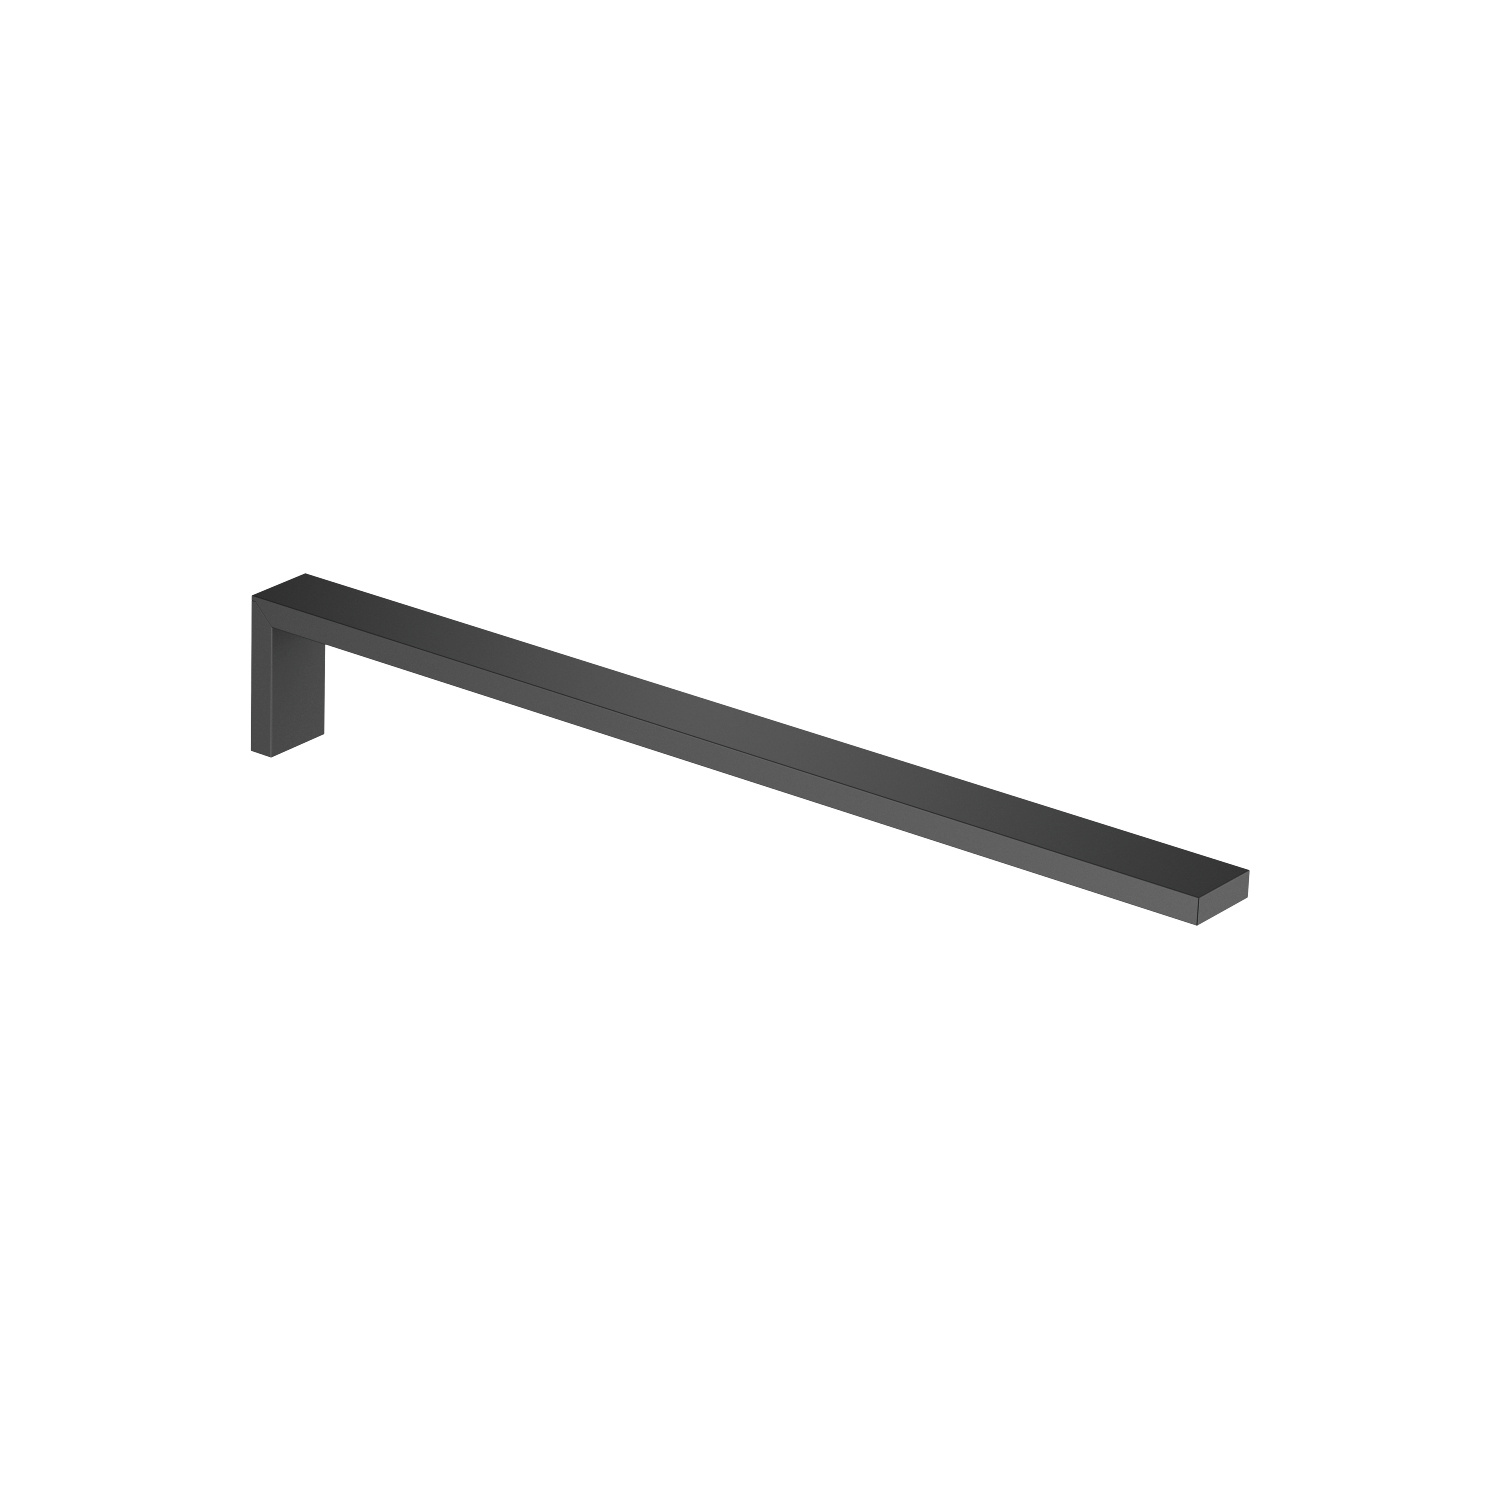 Towel bar 1-piece non-swivel - matt black